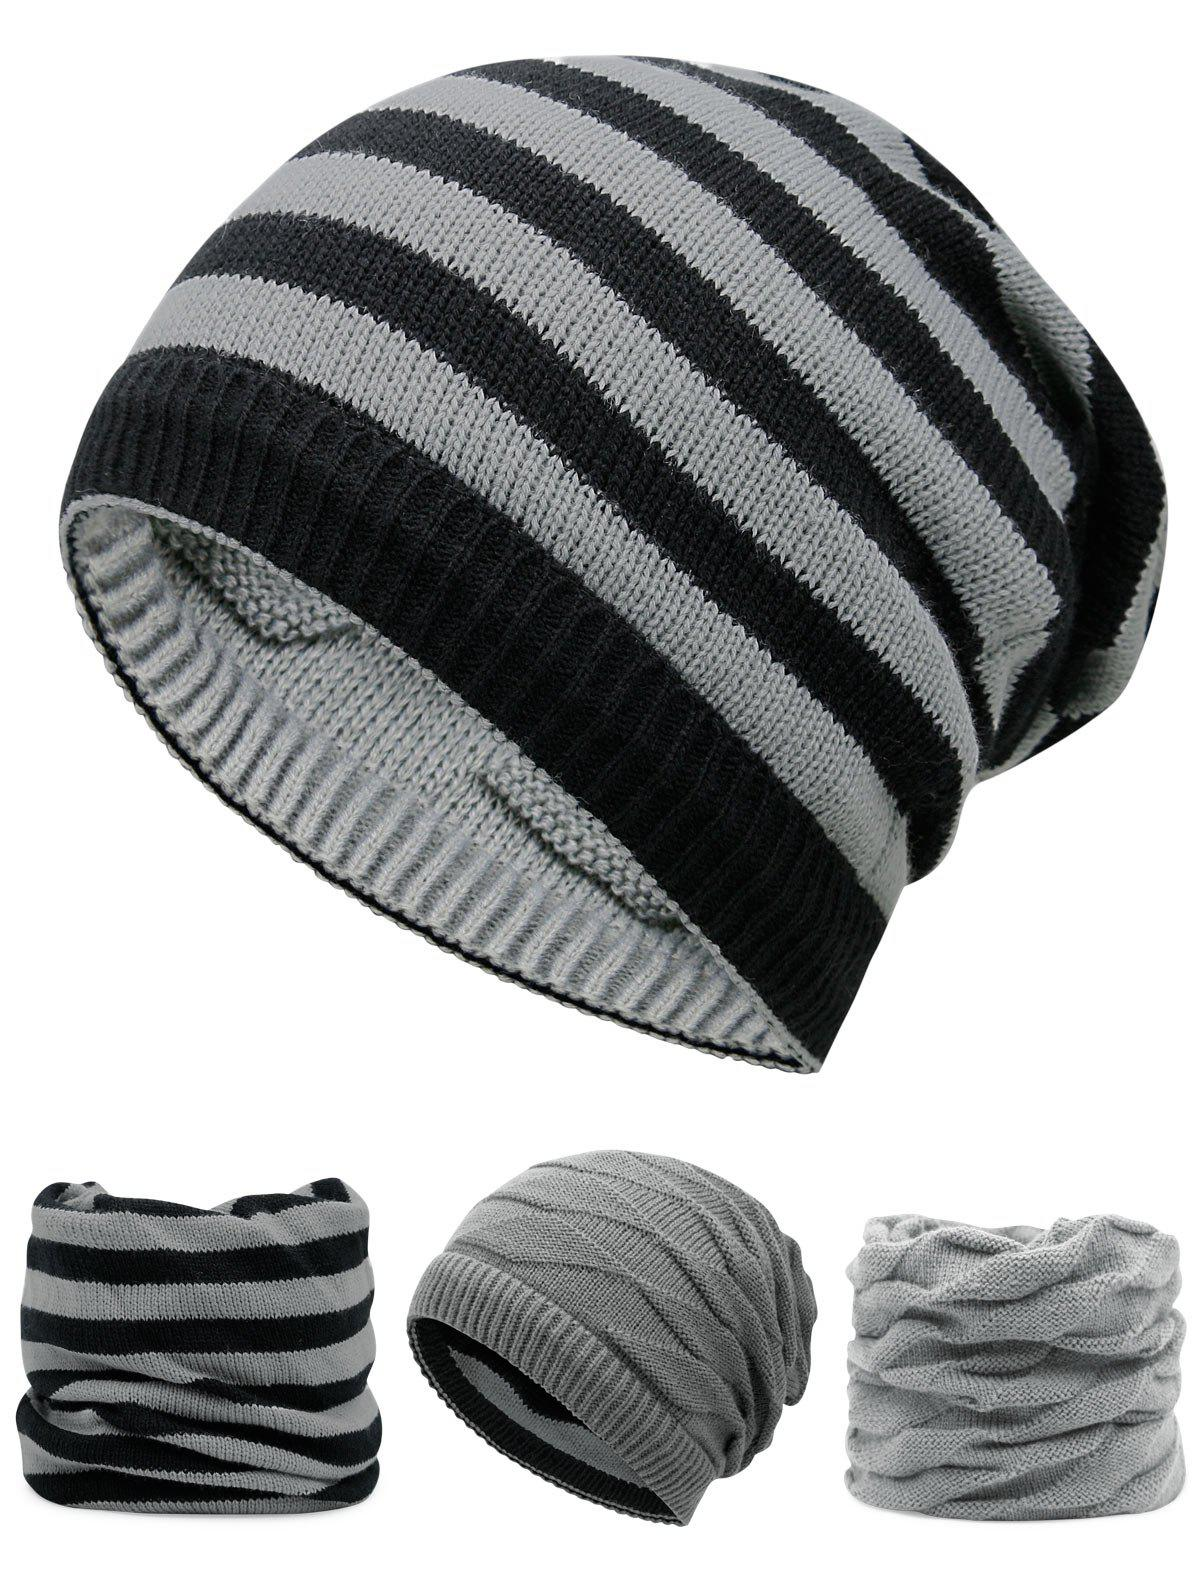 Outdoor Ponytail Hole Embellished Reversible Knit Beanie HatACCESSORIES<br><br>Color: LIGHT GREY; Hat Type: Skullies Beanie; Group: Adult; Gender: For Men; Style: Fashion; Pattern Type: Others; Material: Acrylic; Weight: 0.1200kg; Package Contents: 1 x Hat;